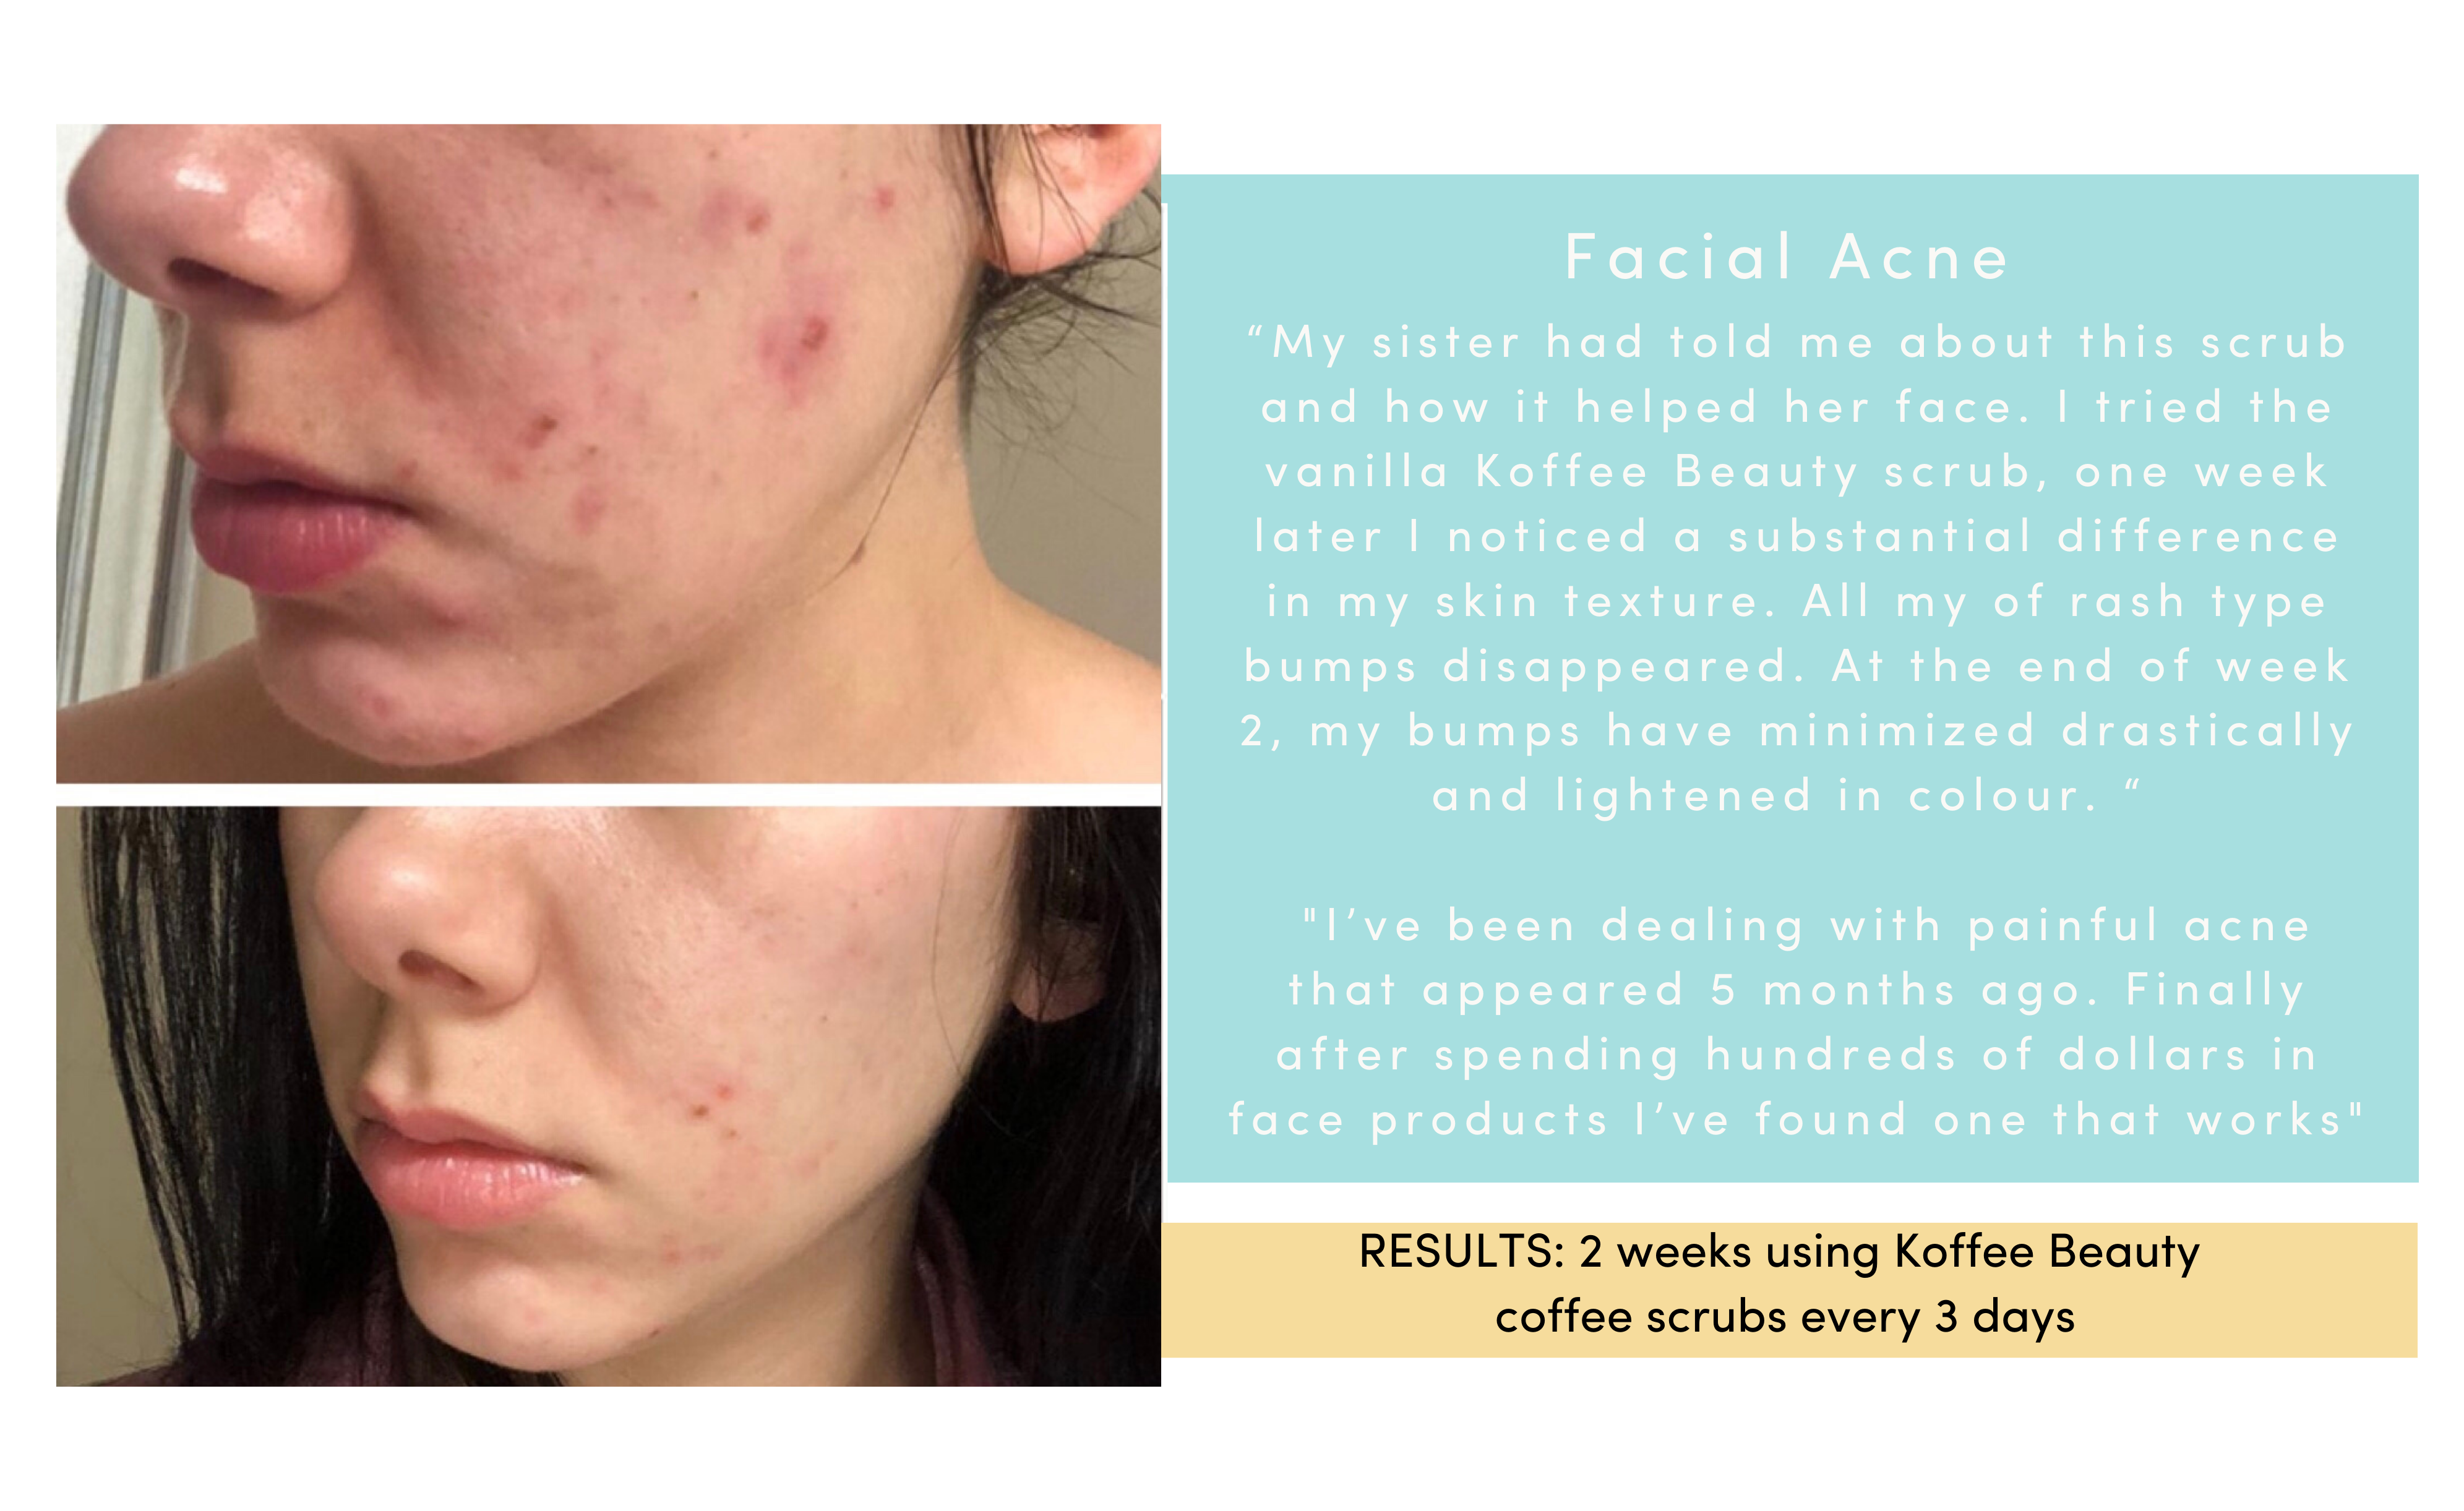 acne_results